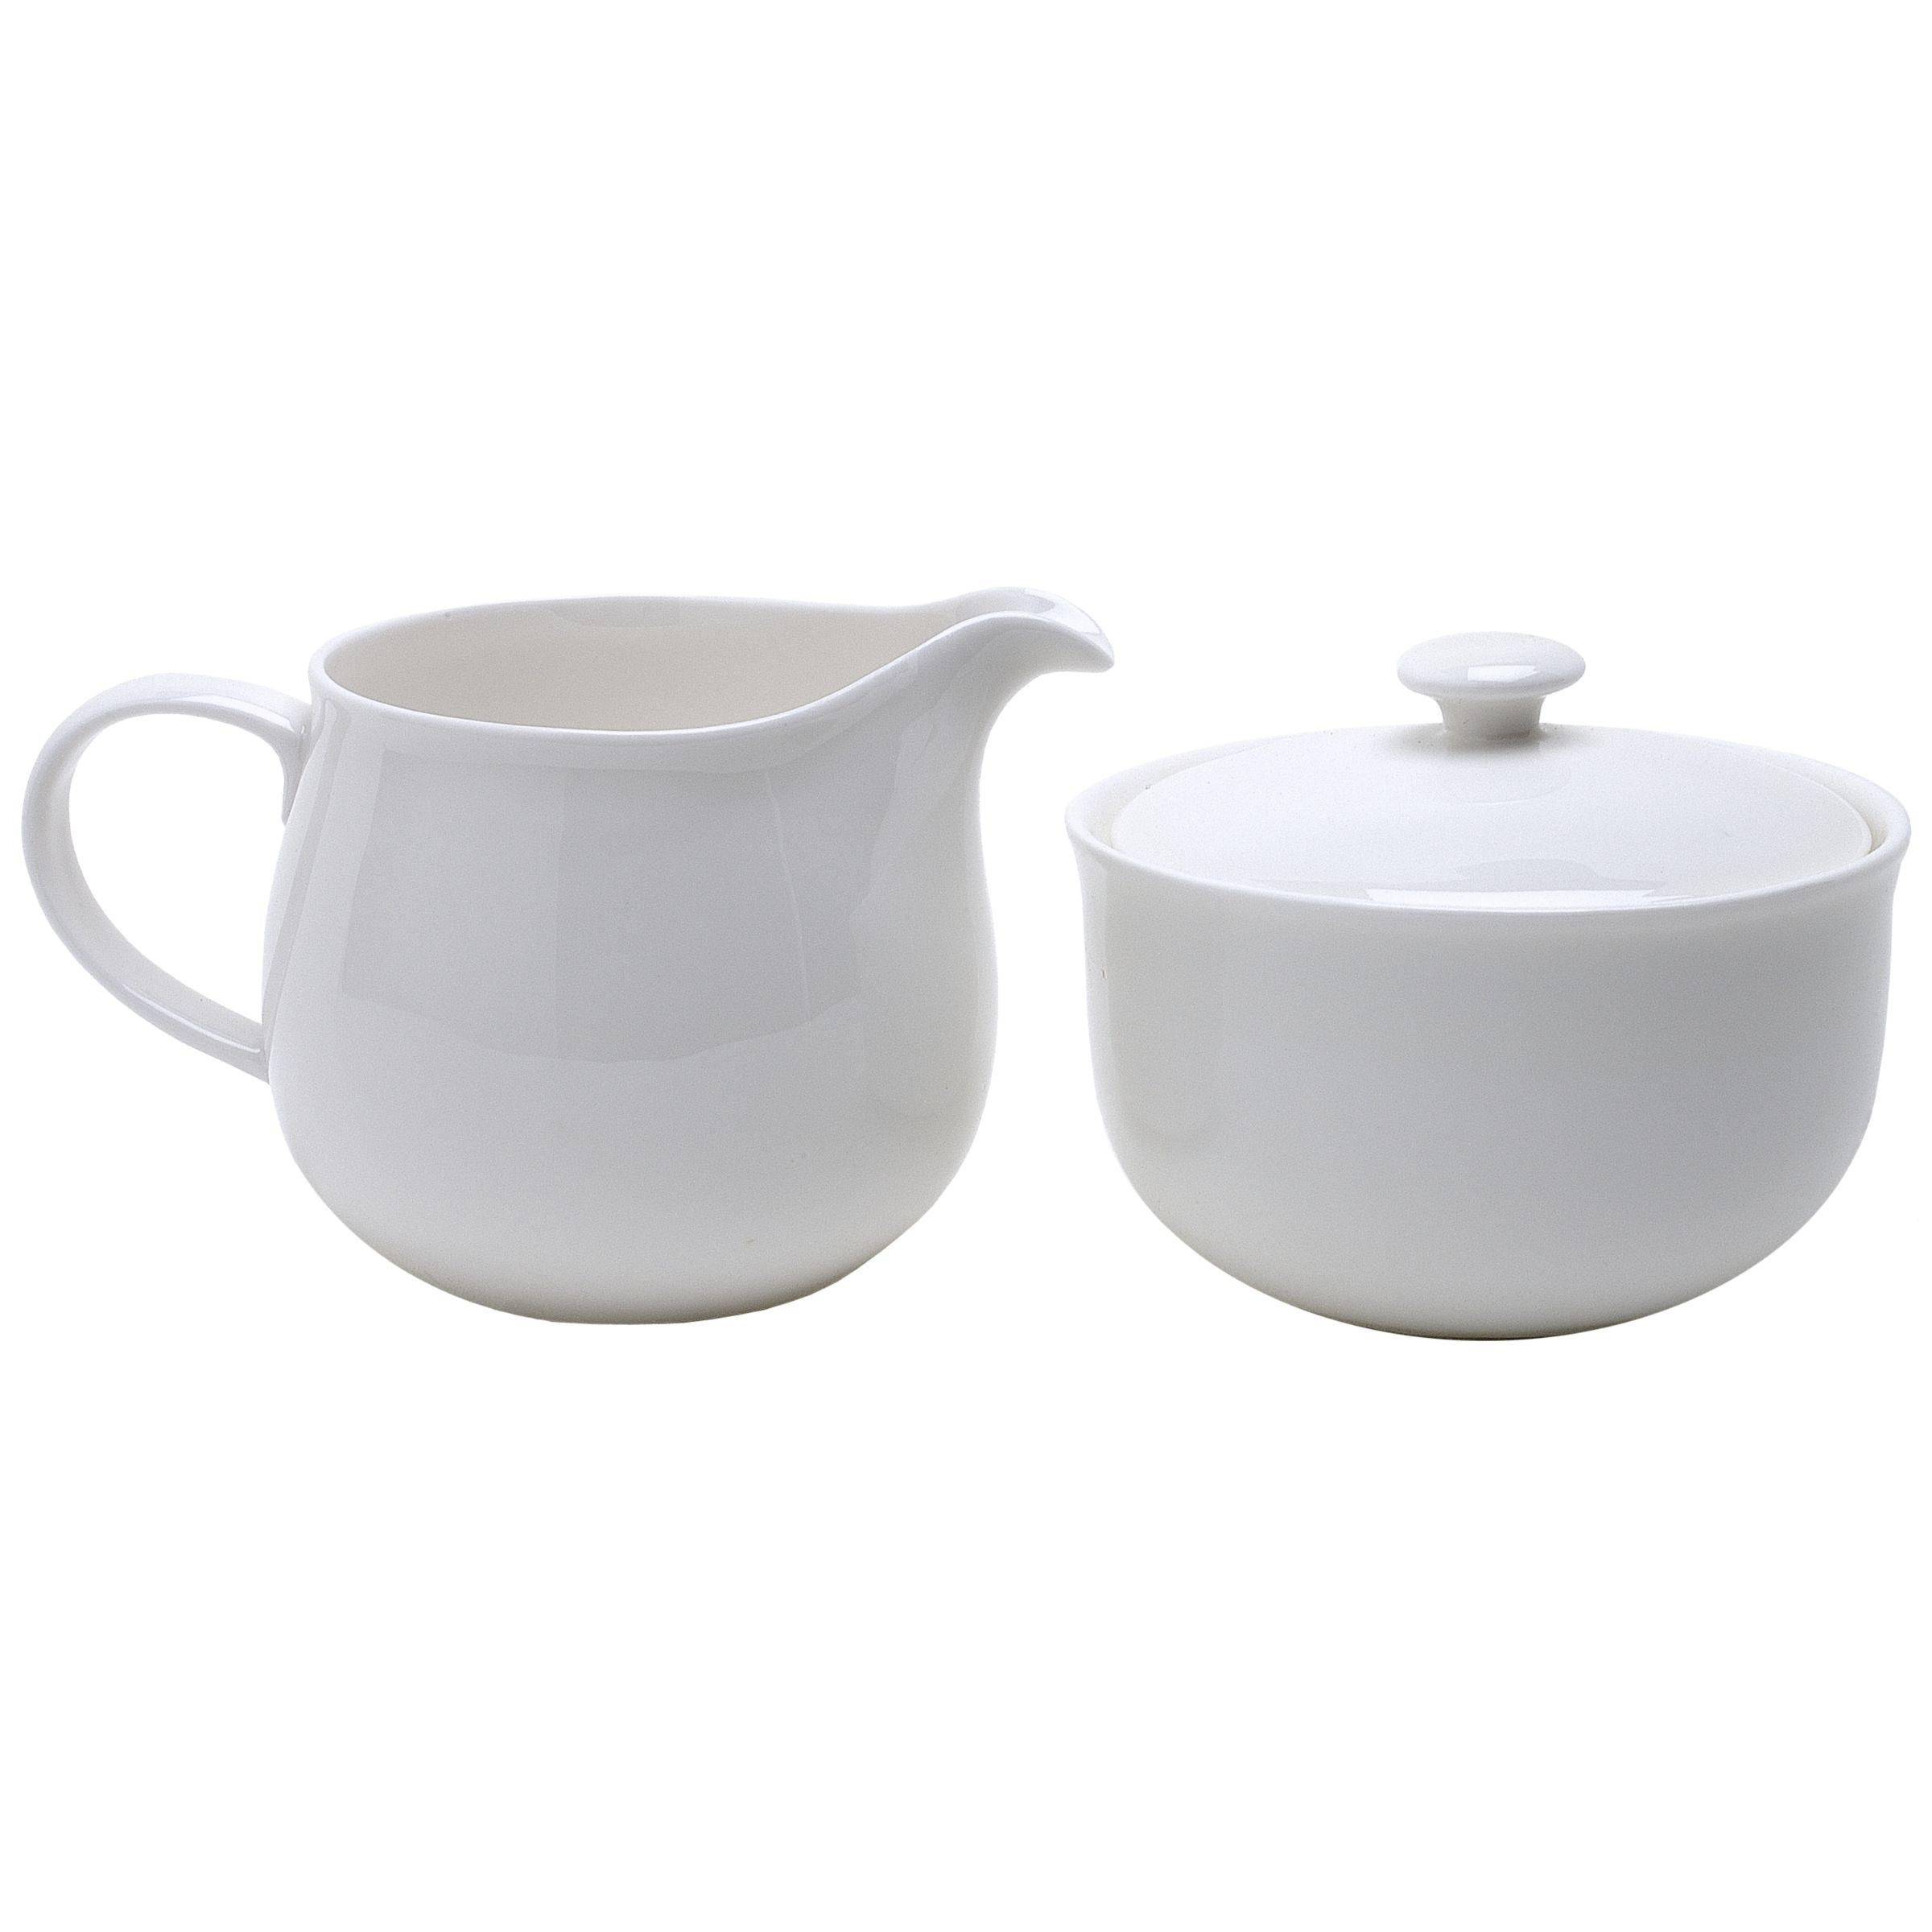 Queensberry Hunt for John Lewis White Cream Jug and Sugar Bowl